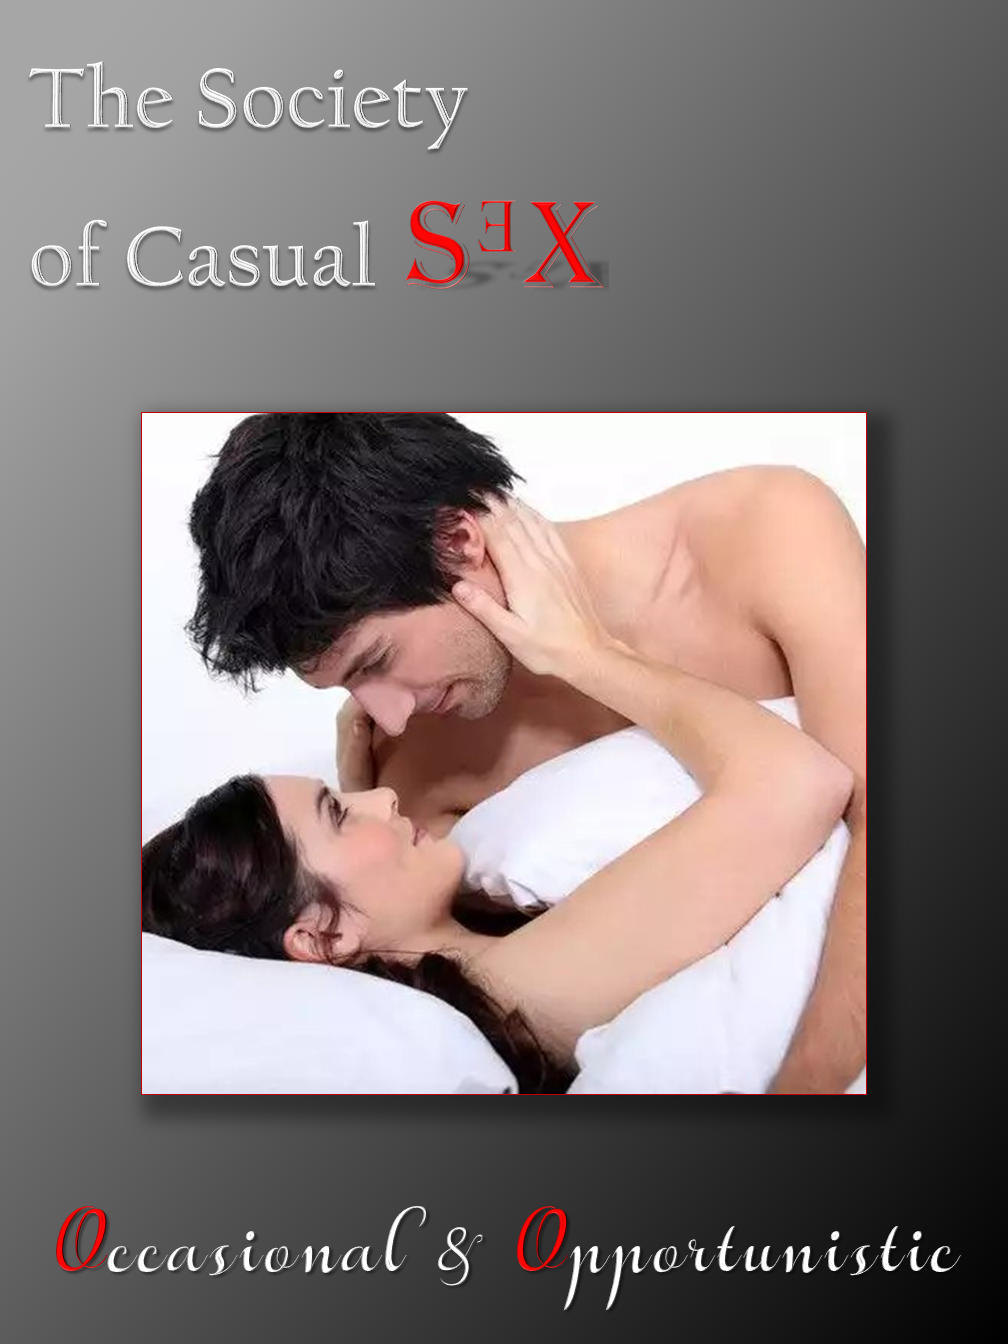 The Society of Casual Sex!